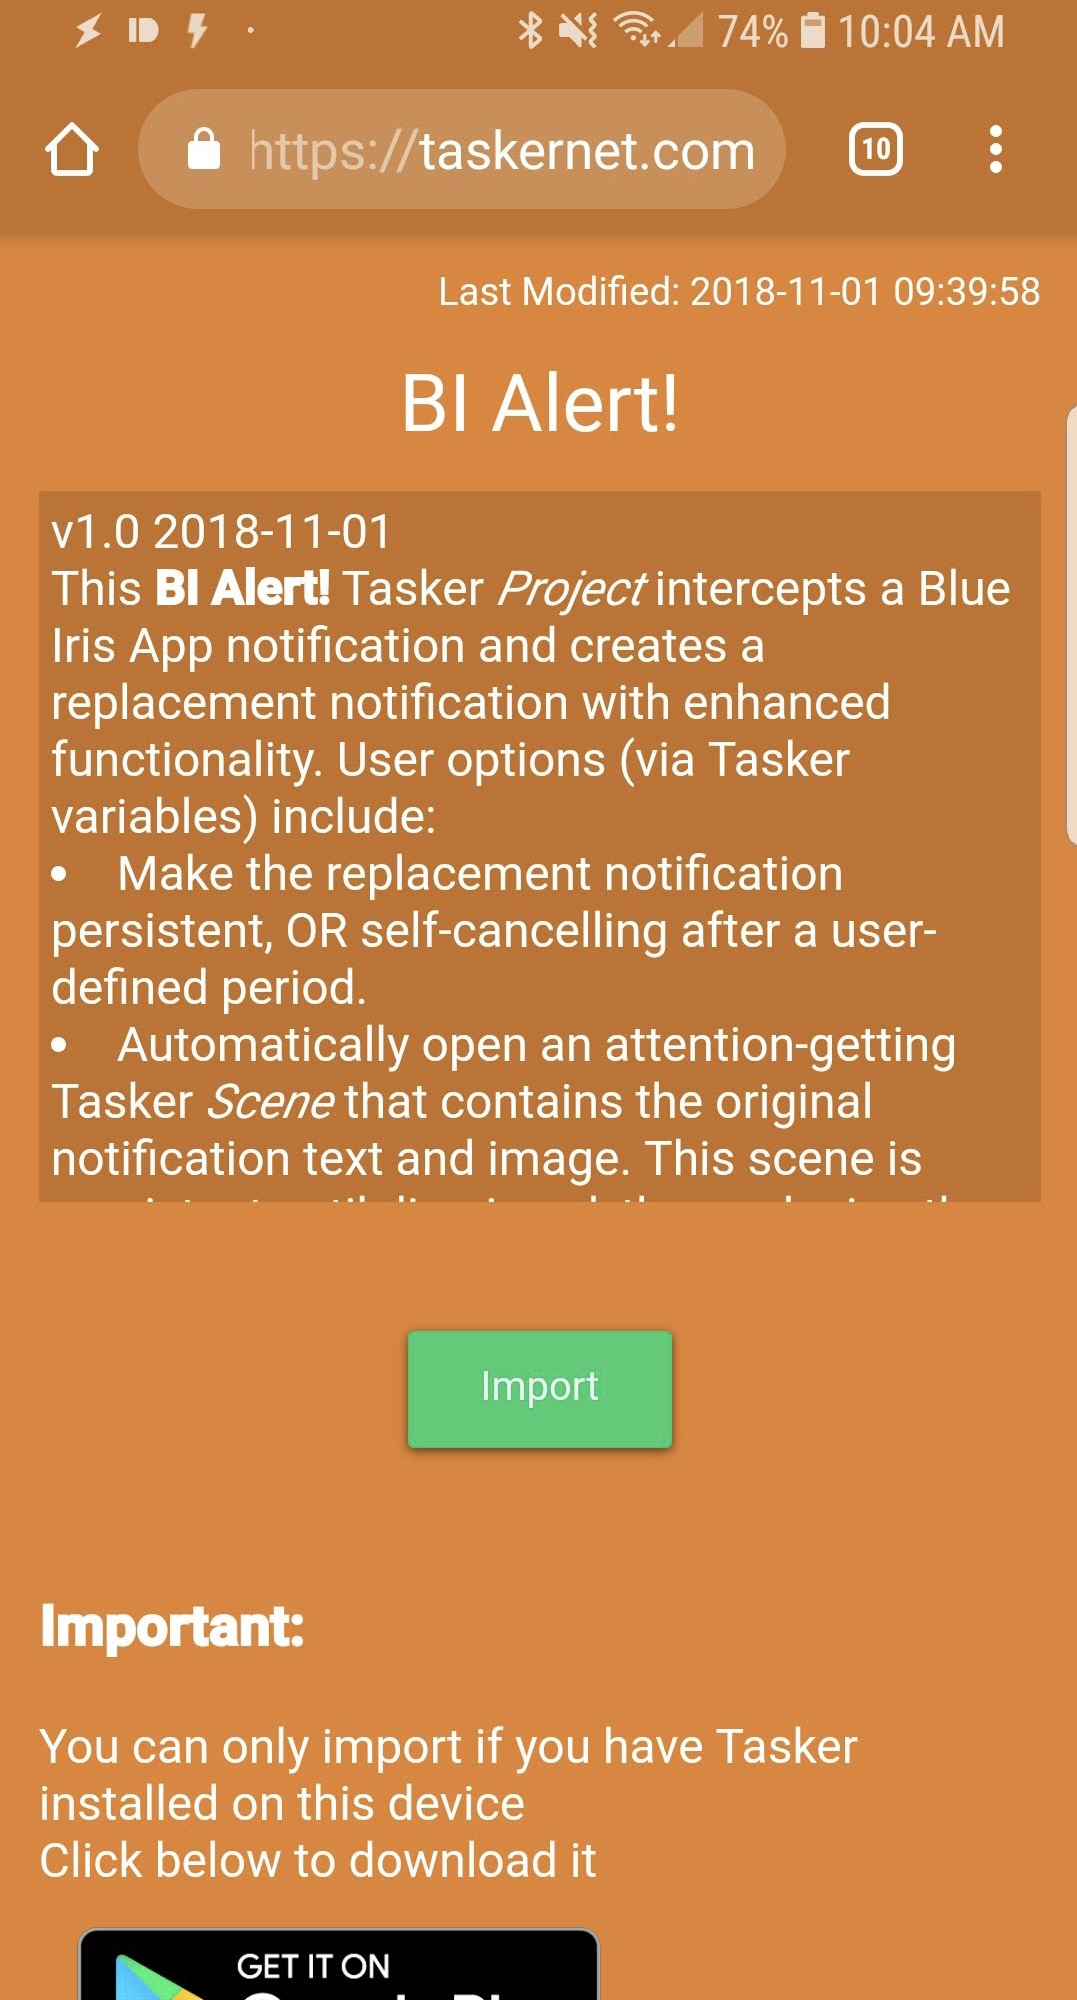 BI Alert! - Enhanced Notifications for the Blue Iris Android